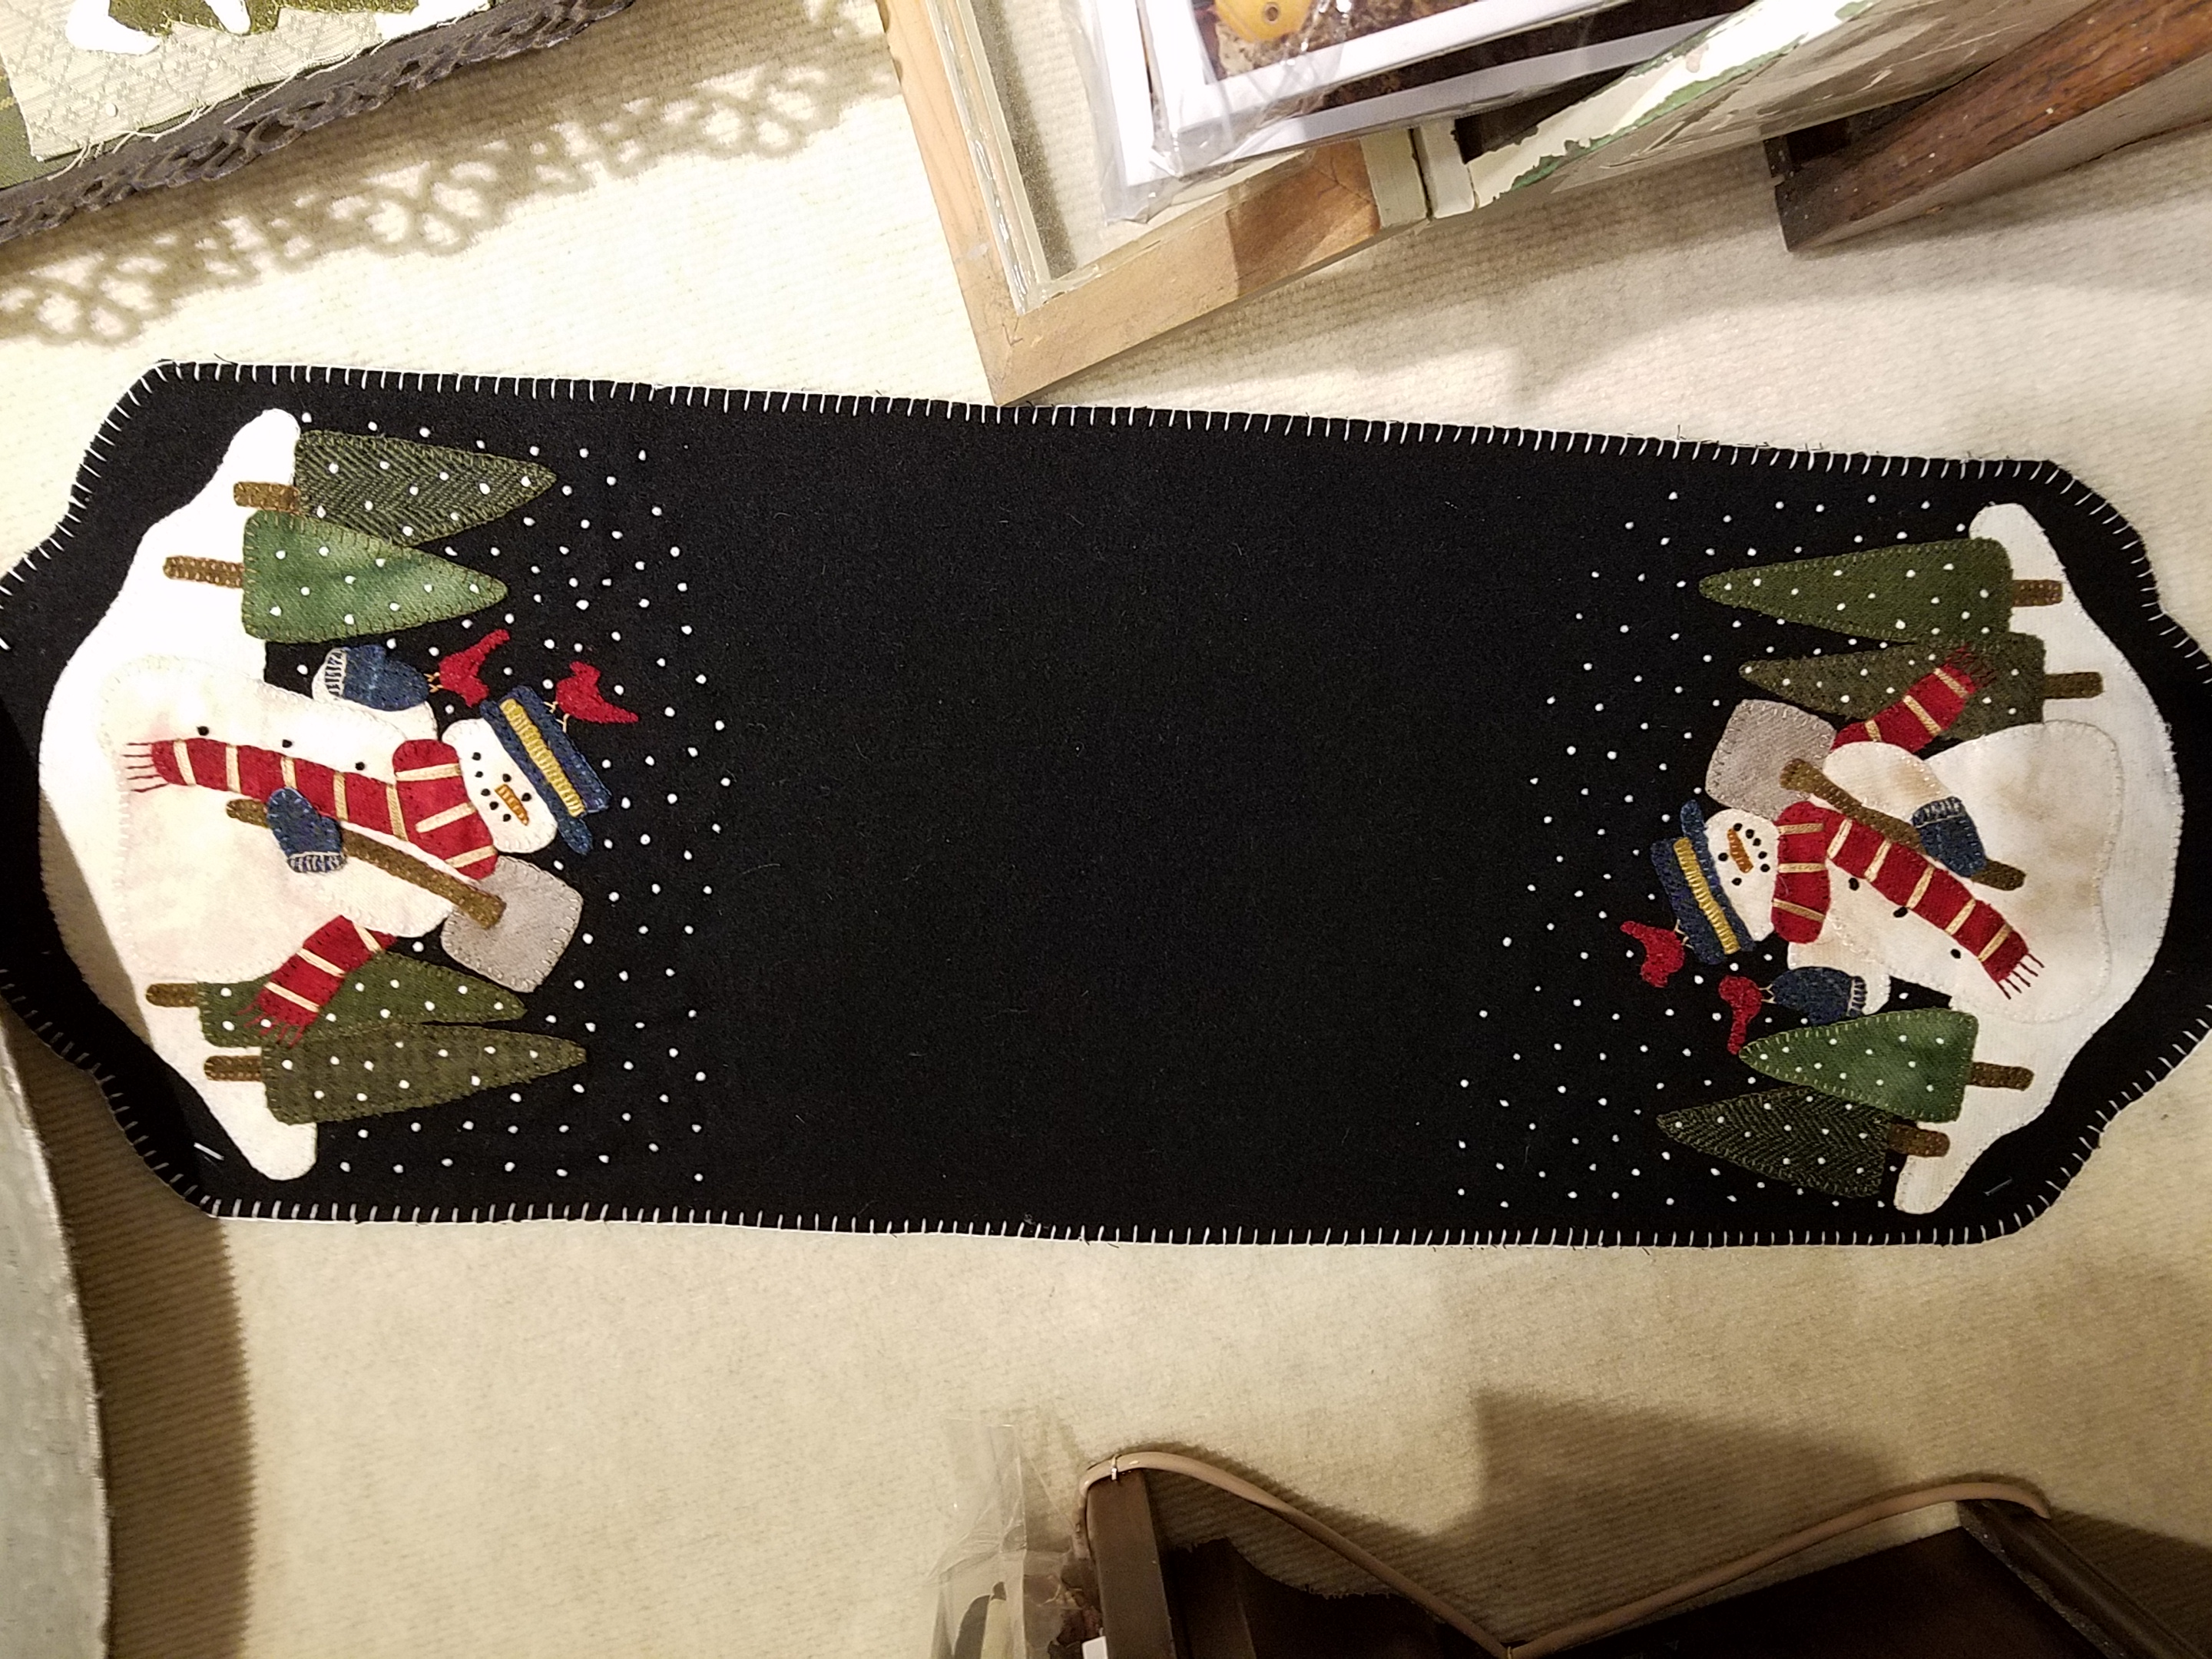 Snowman For Hire Wool Table Runner Kit with Pattern: 10.5 x 30